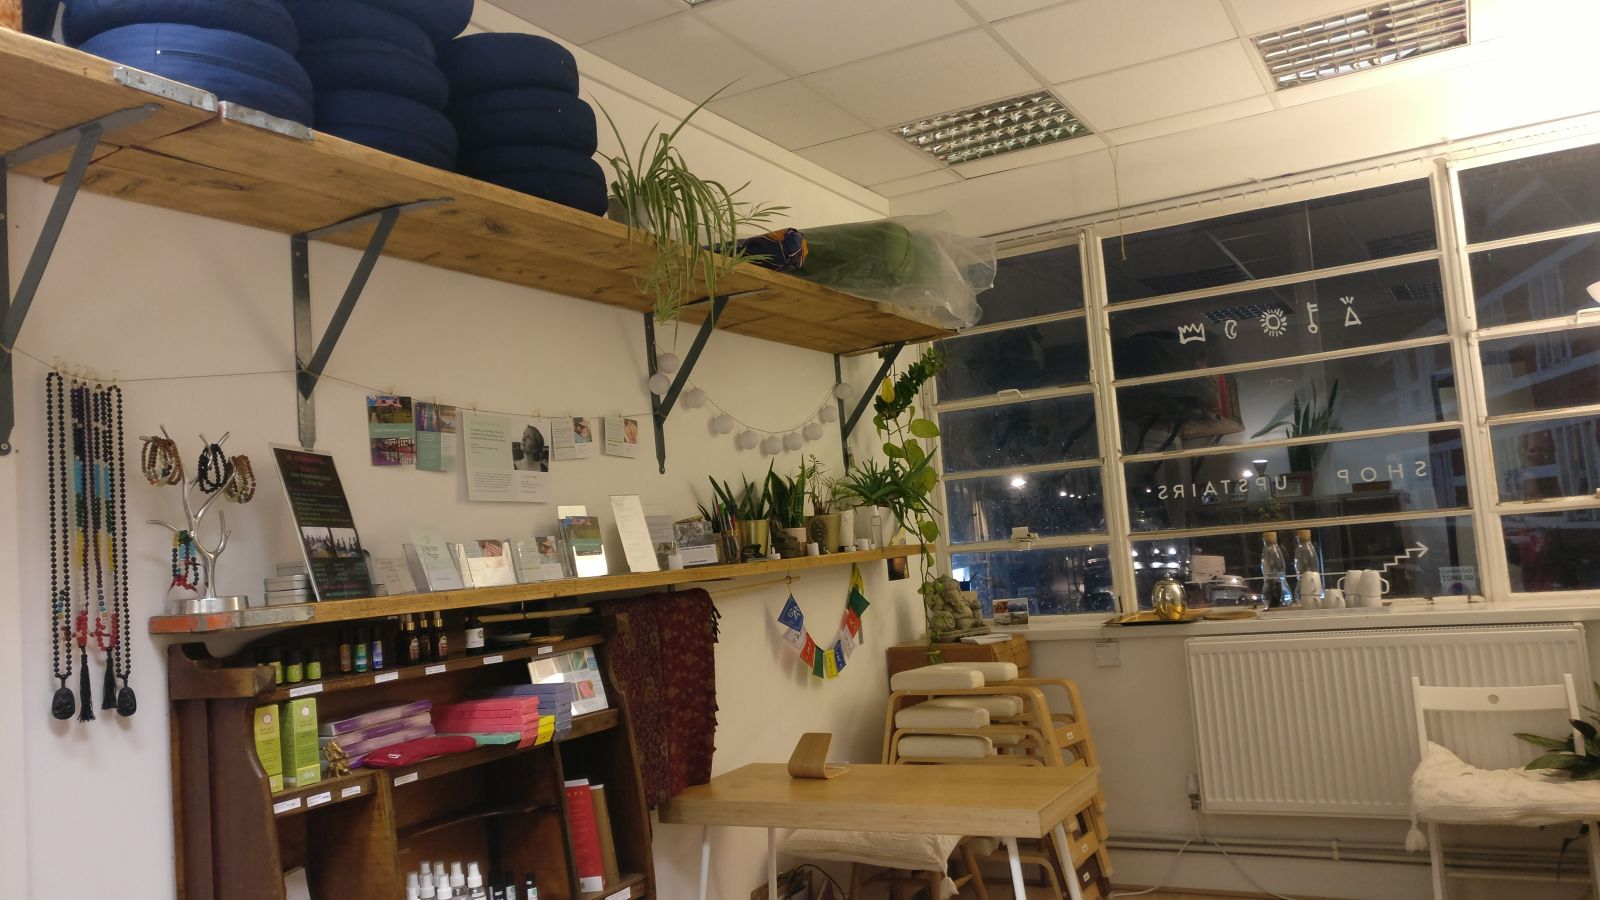 20181127 Leyton Yoga Studio - reception area